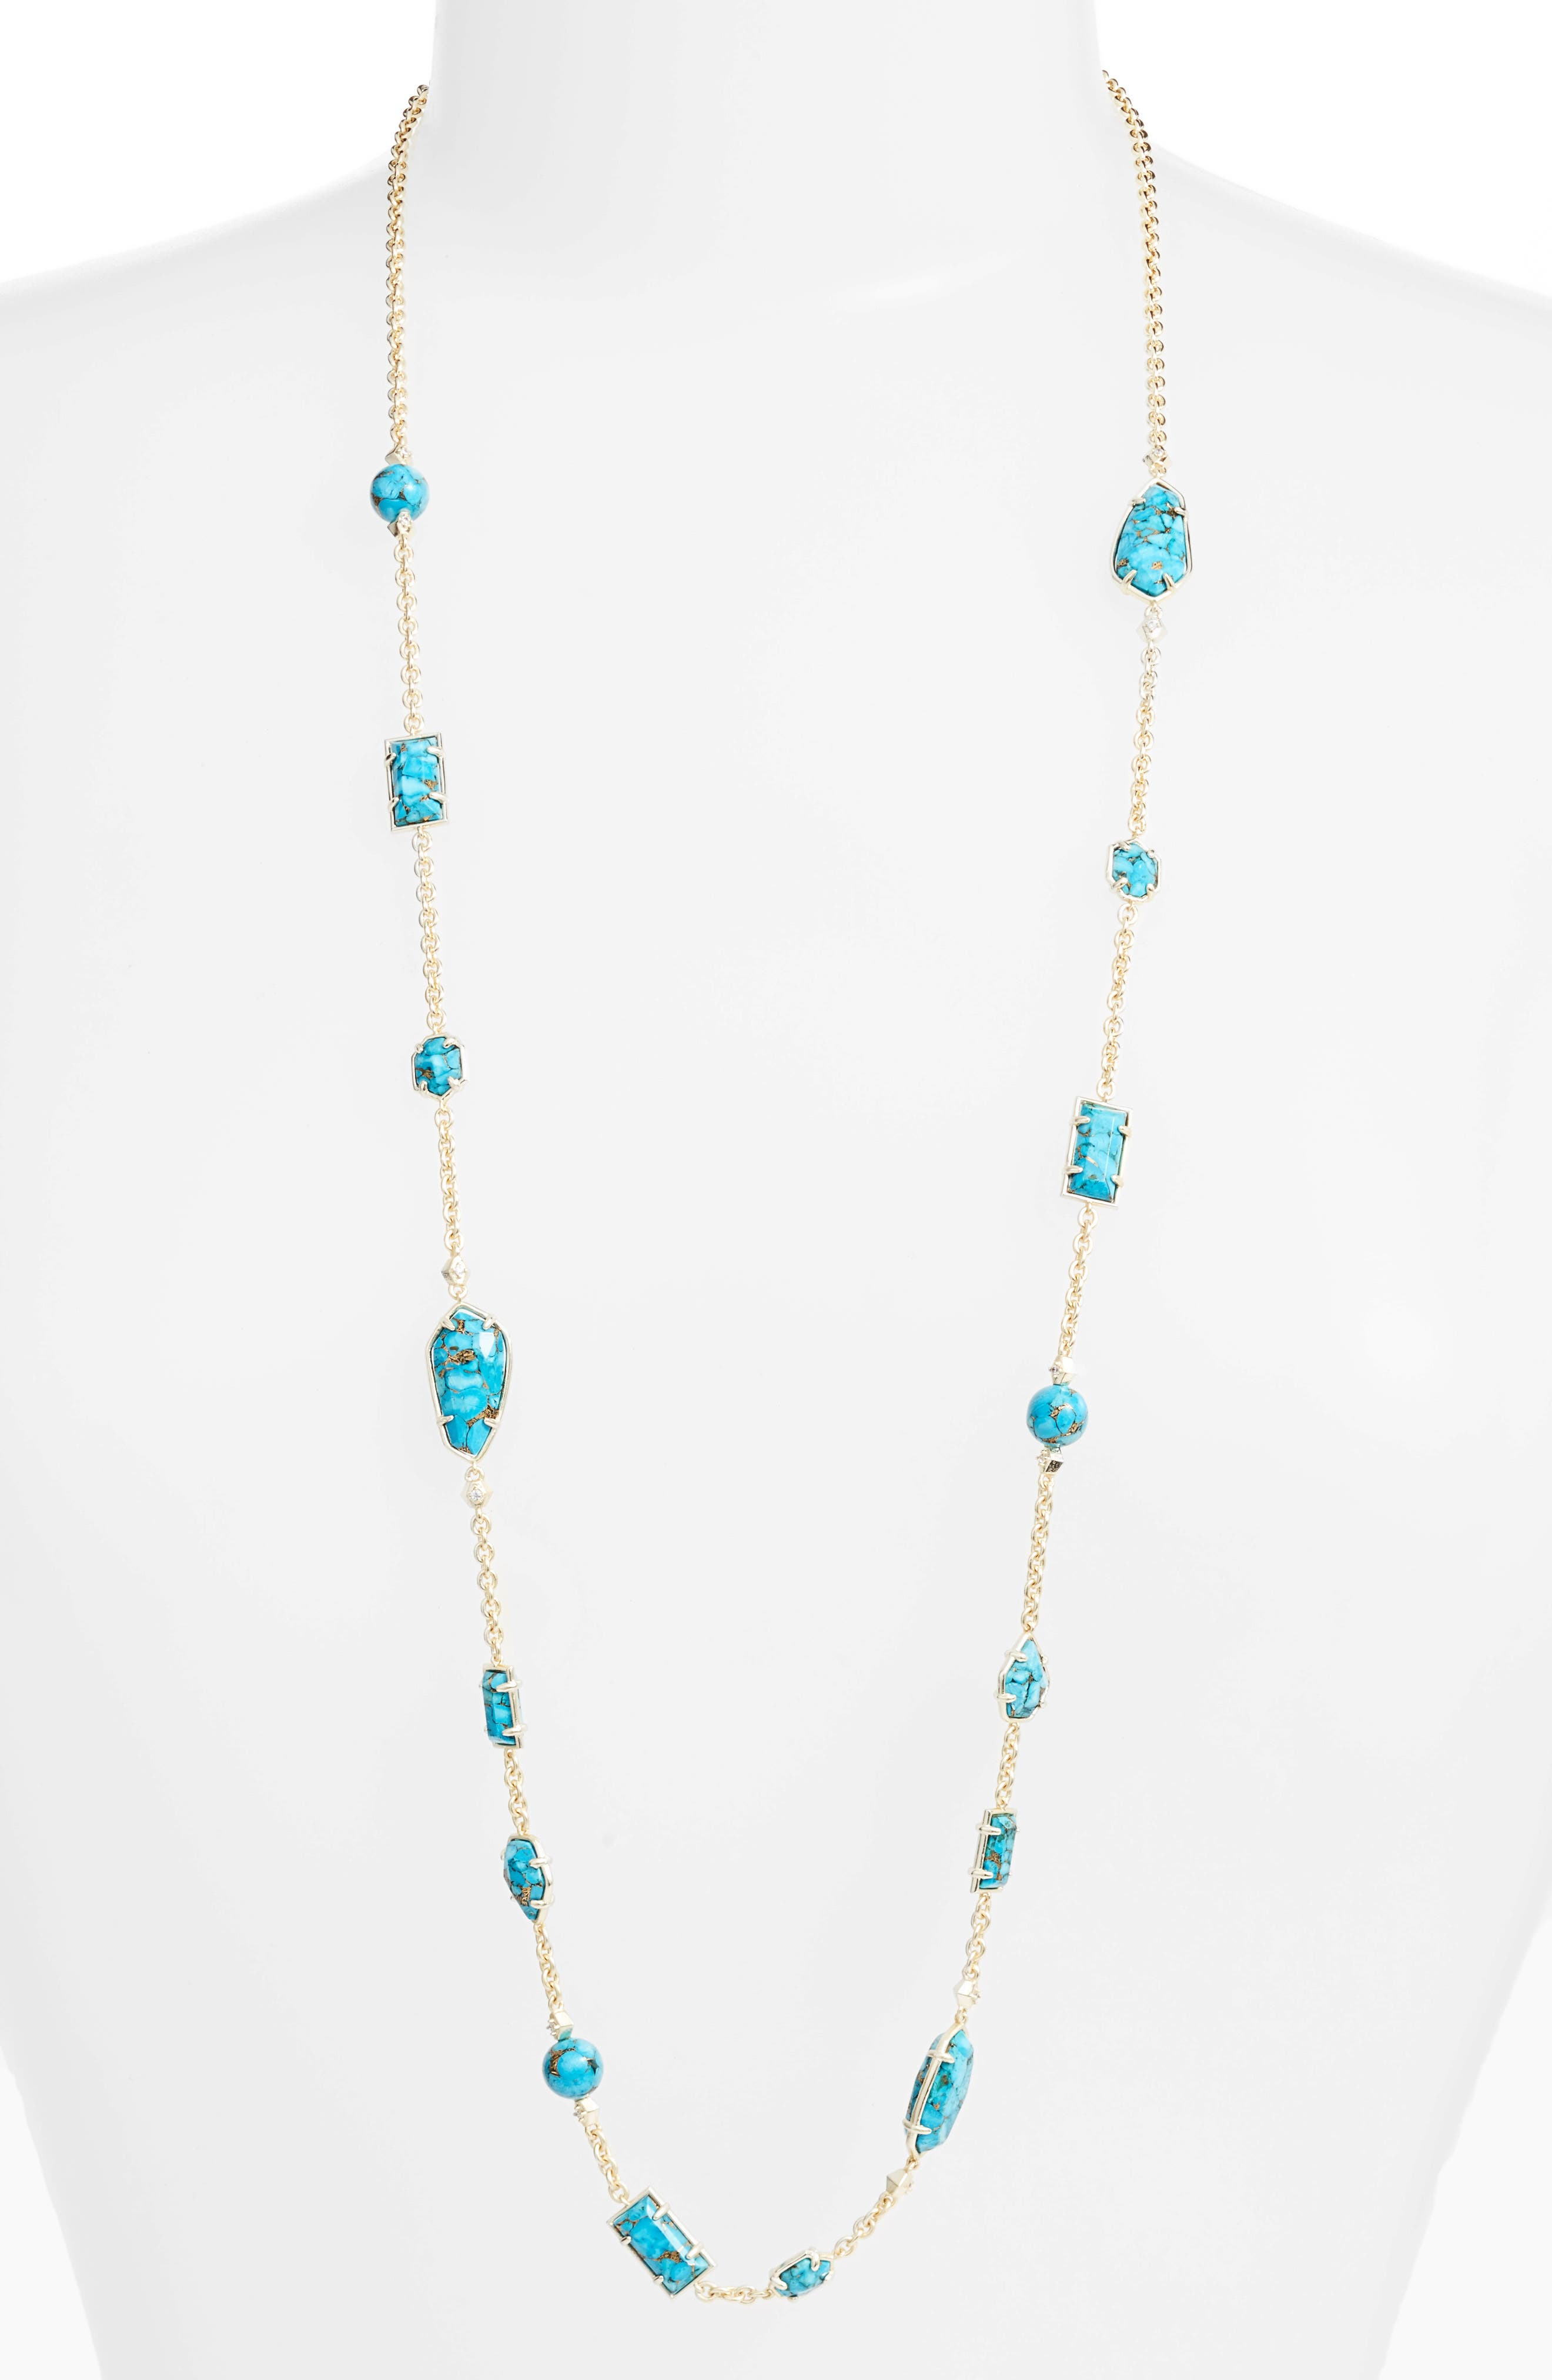 Main Image - Kendra Scott Joann Semiprecious Stone Station Necklace (Nordstrom Exclusive)